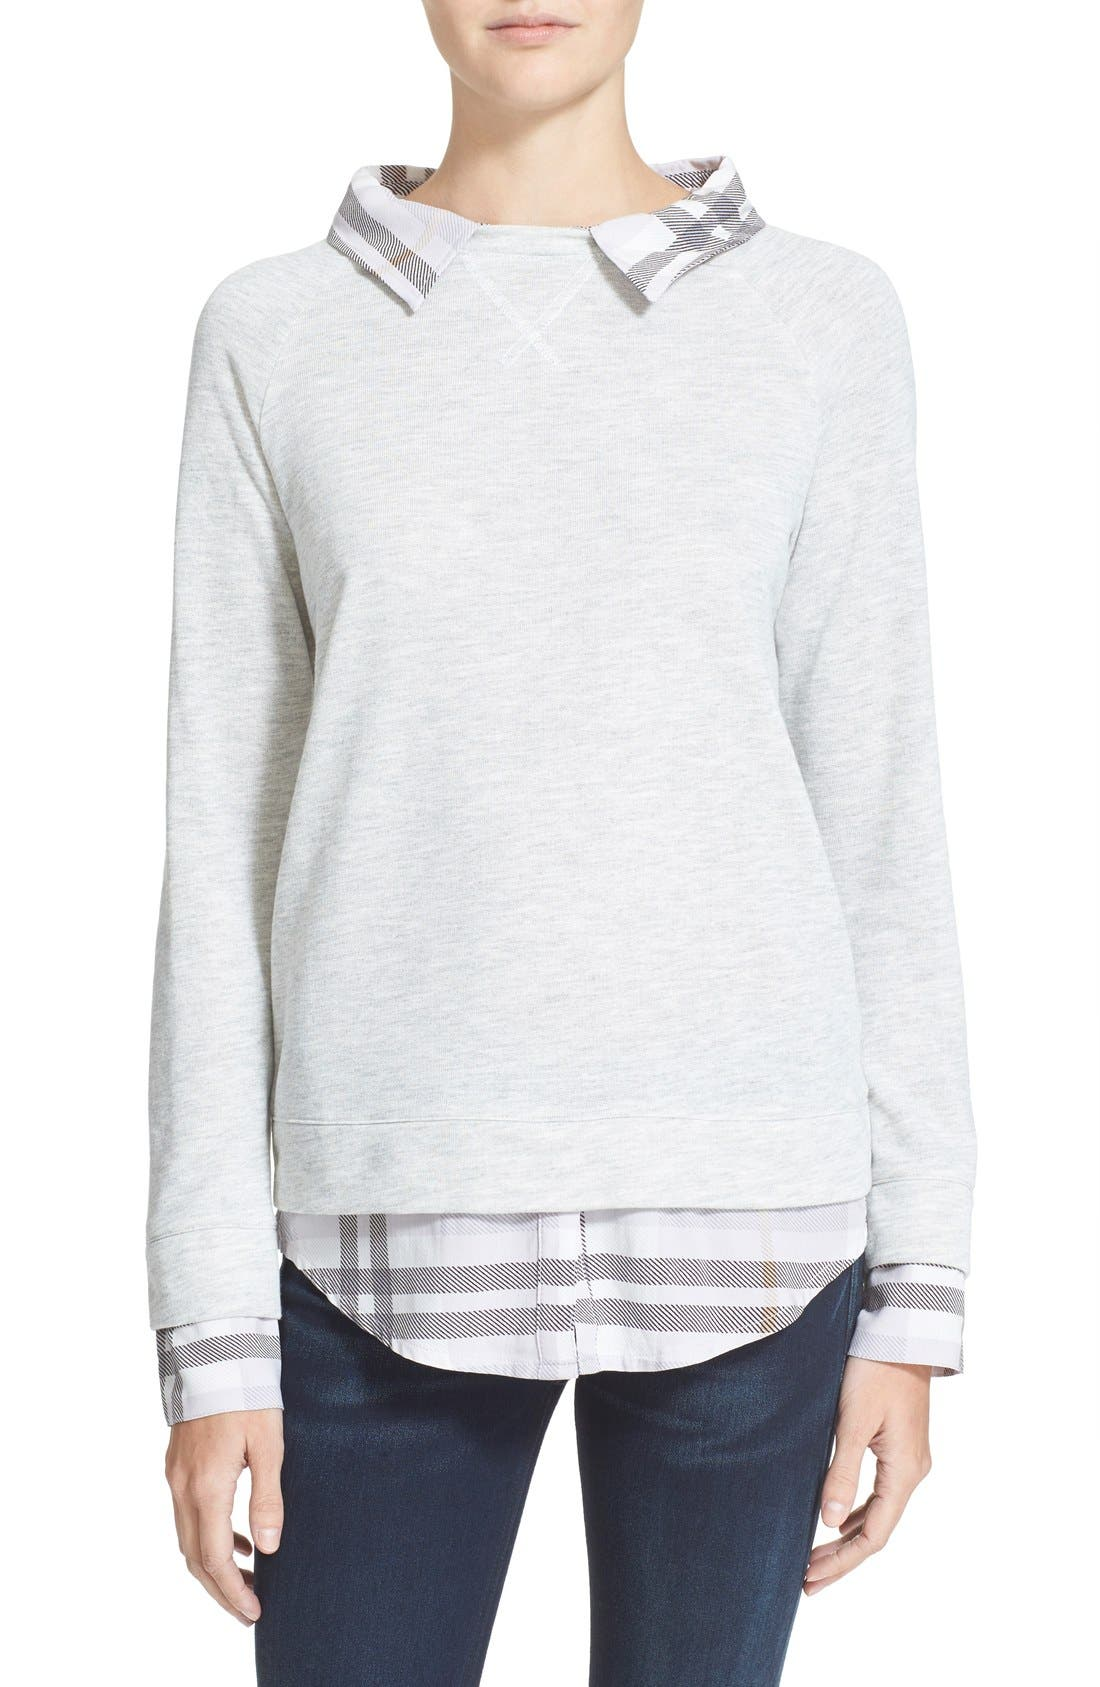 Alternate Image 1 Selected - Soft Joie 'Diadem' Layered Pullover